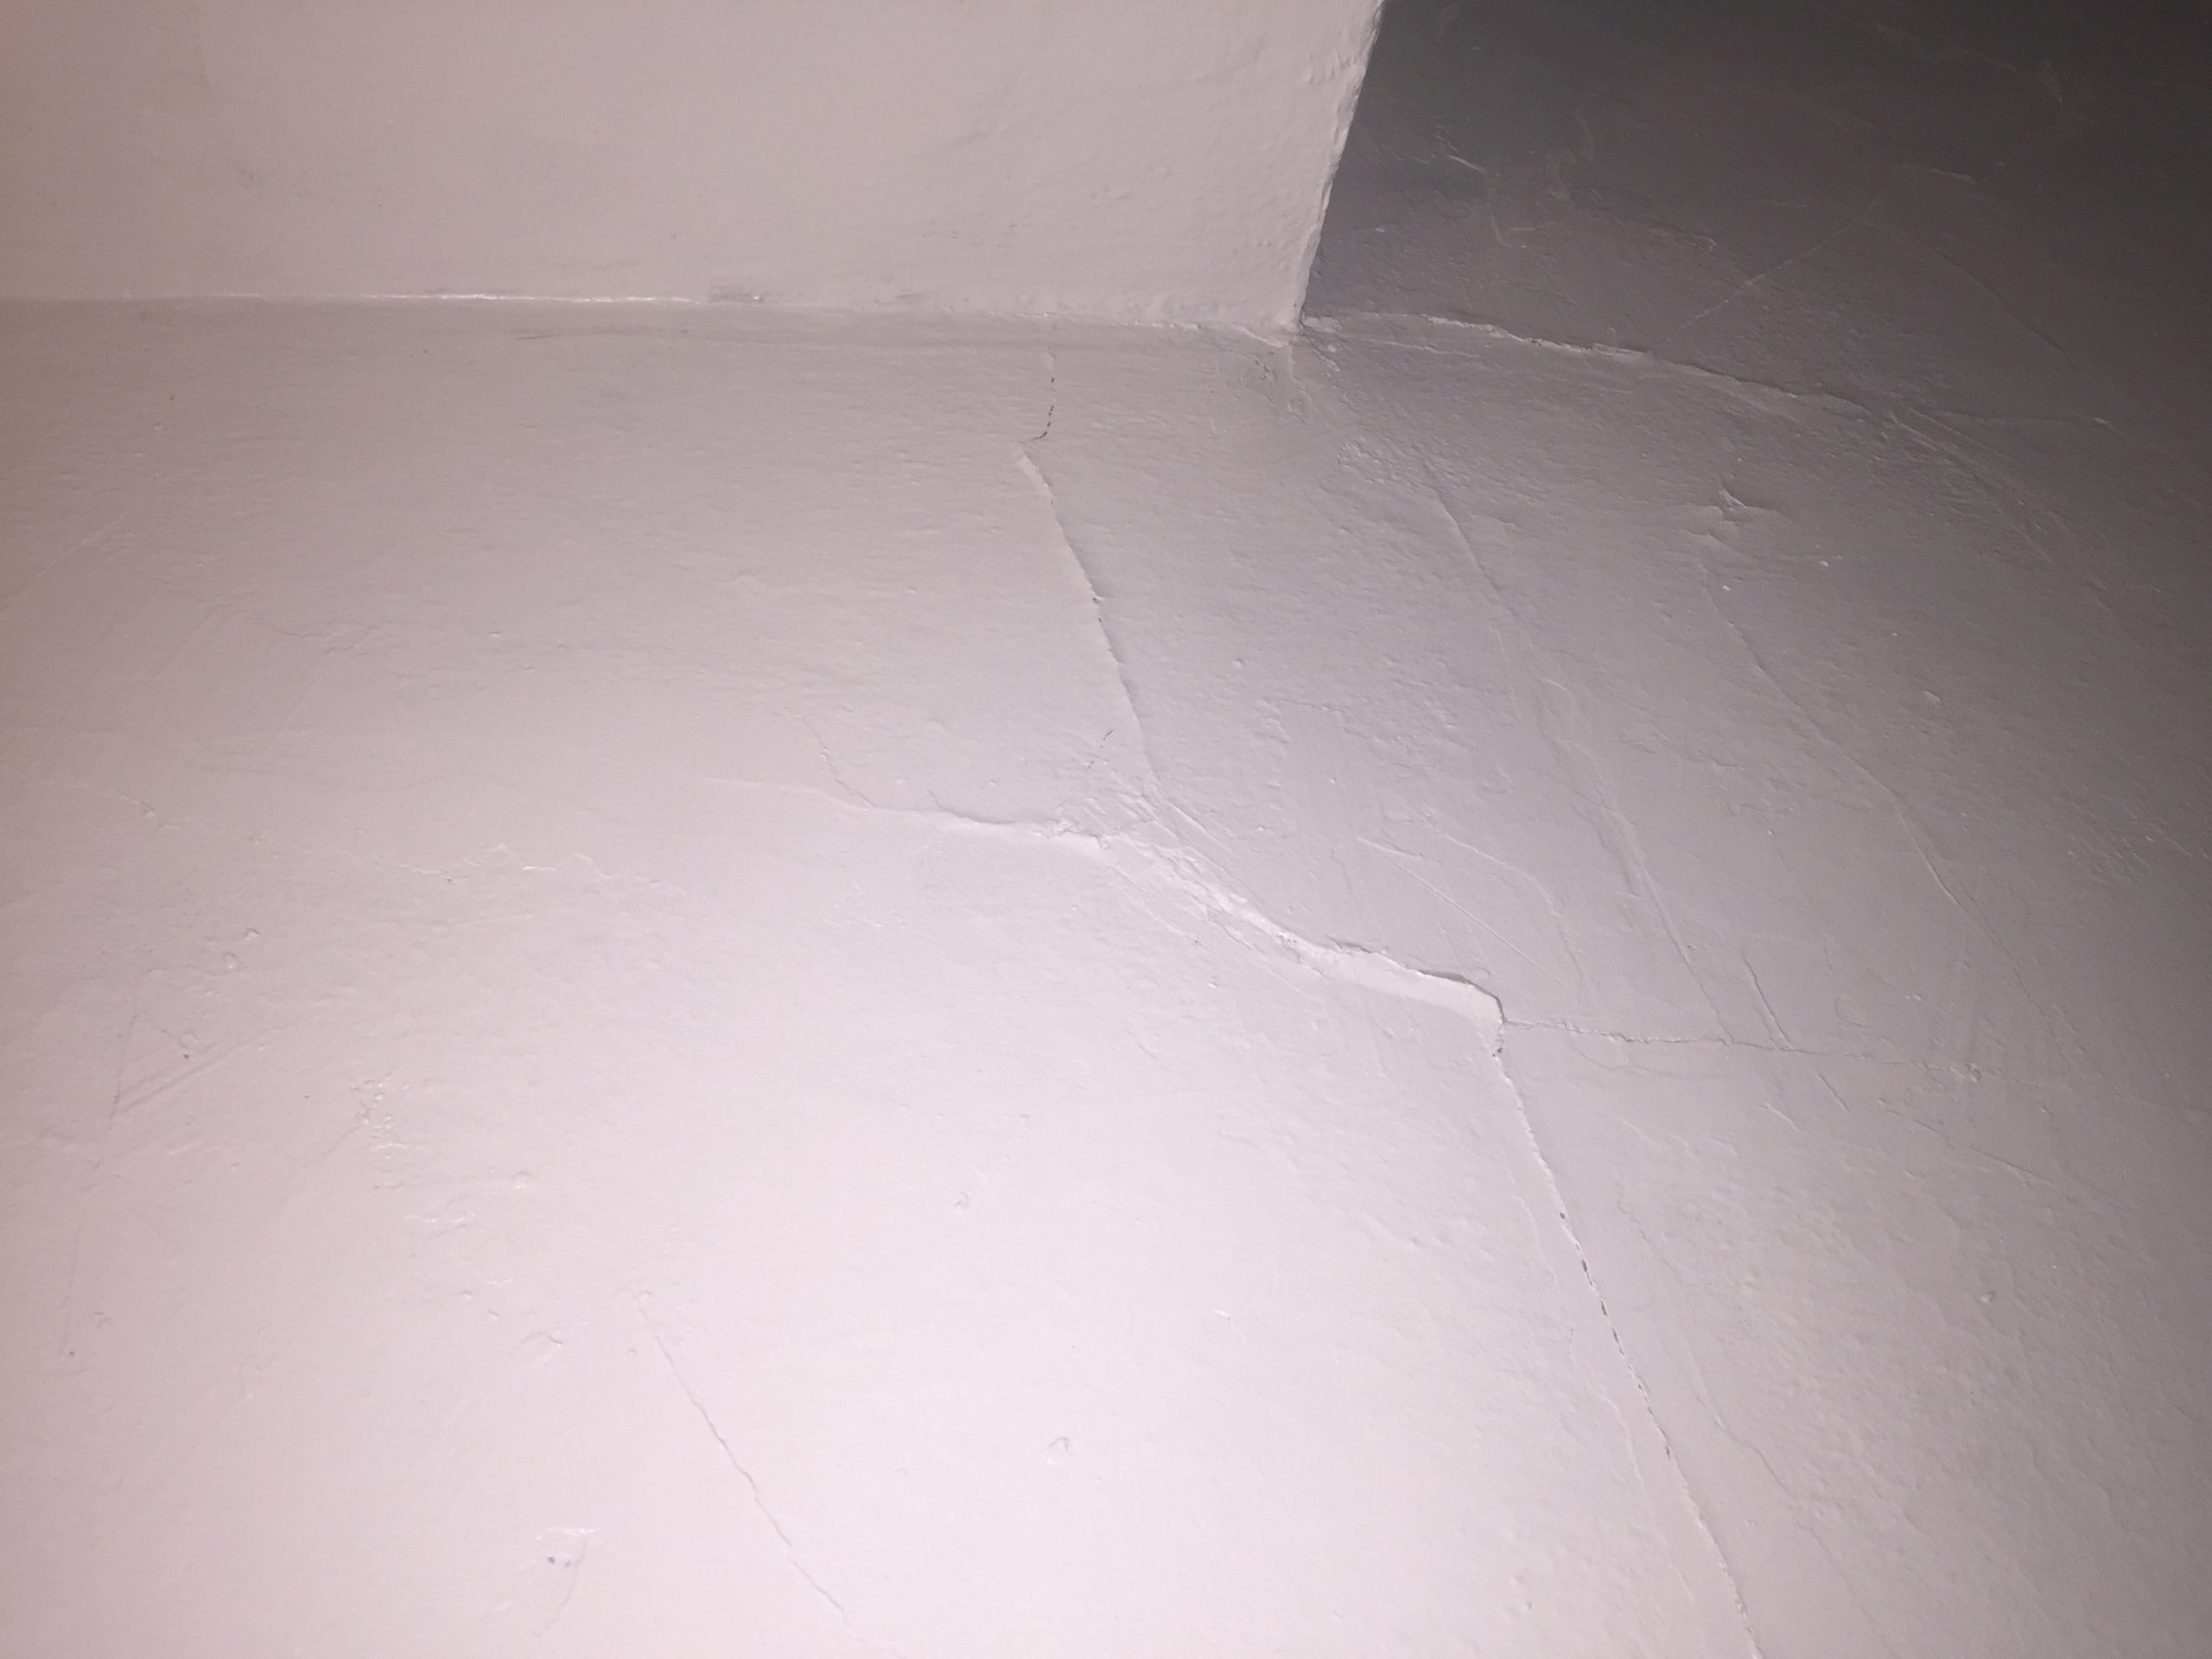 How Can I Smooth And Repair Cracks In A Plaster Wall? - Home inside Plaster Walls